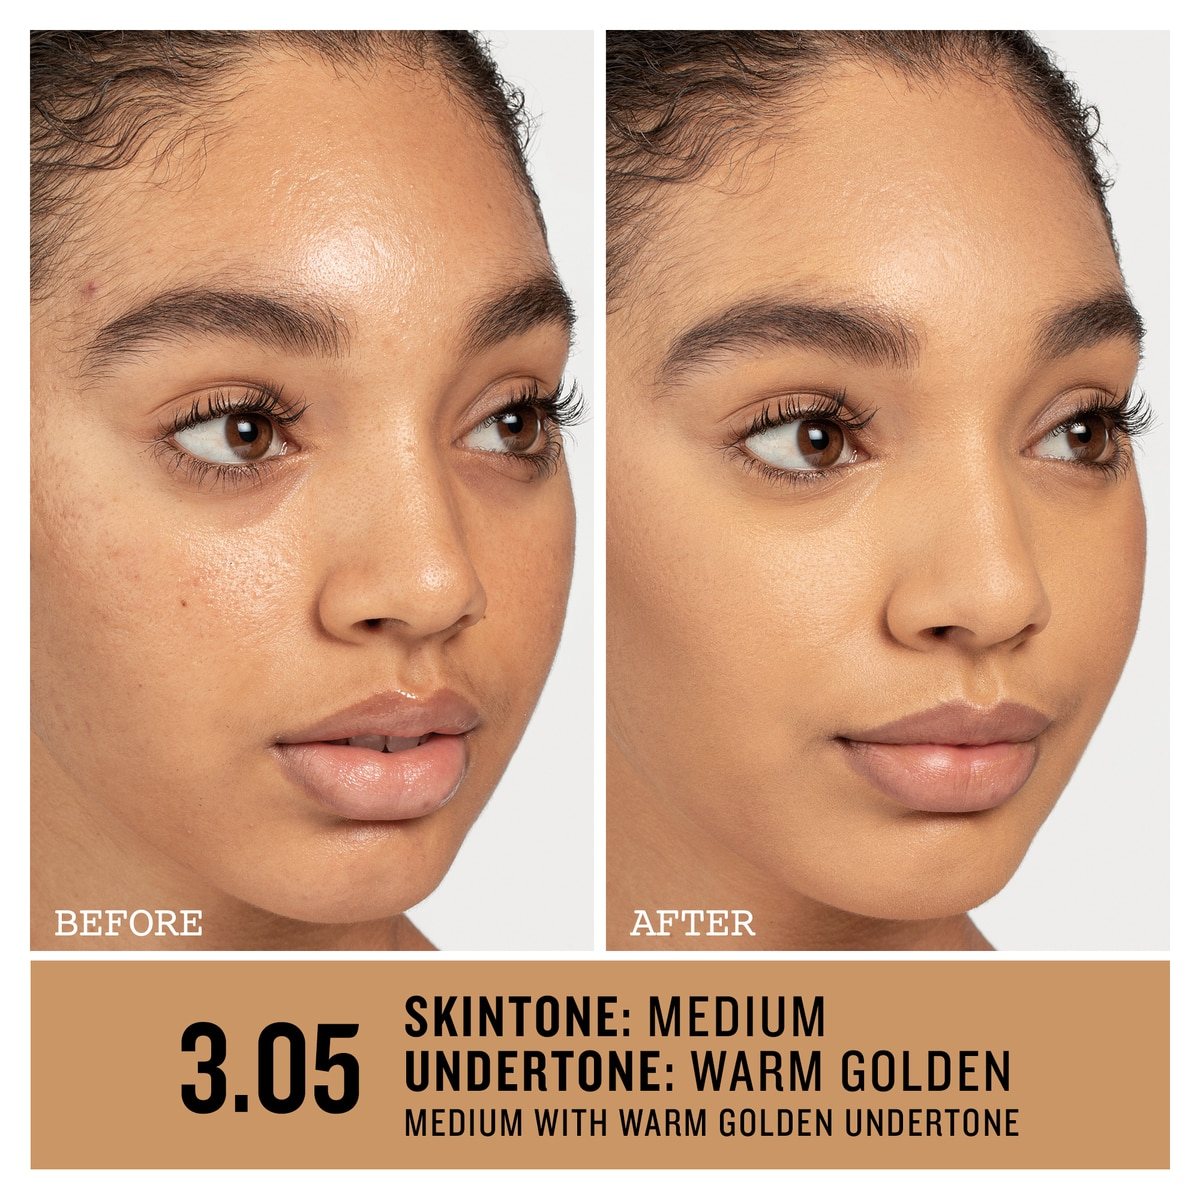 STUDIO SKIN 24 HOUR FULL COVERAGE WATERPROOF FOUNDATION (BASE DE MAQUILLAJE LIQUIDA DE LARGA DURACION Y MAXIMA COBERTURA)